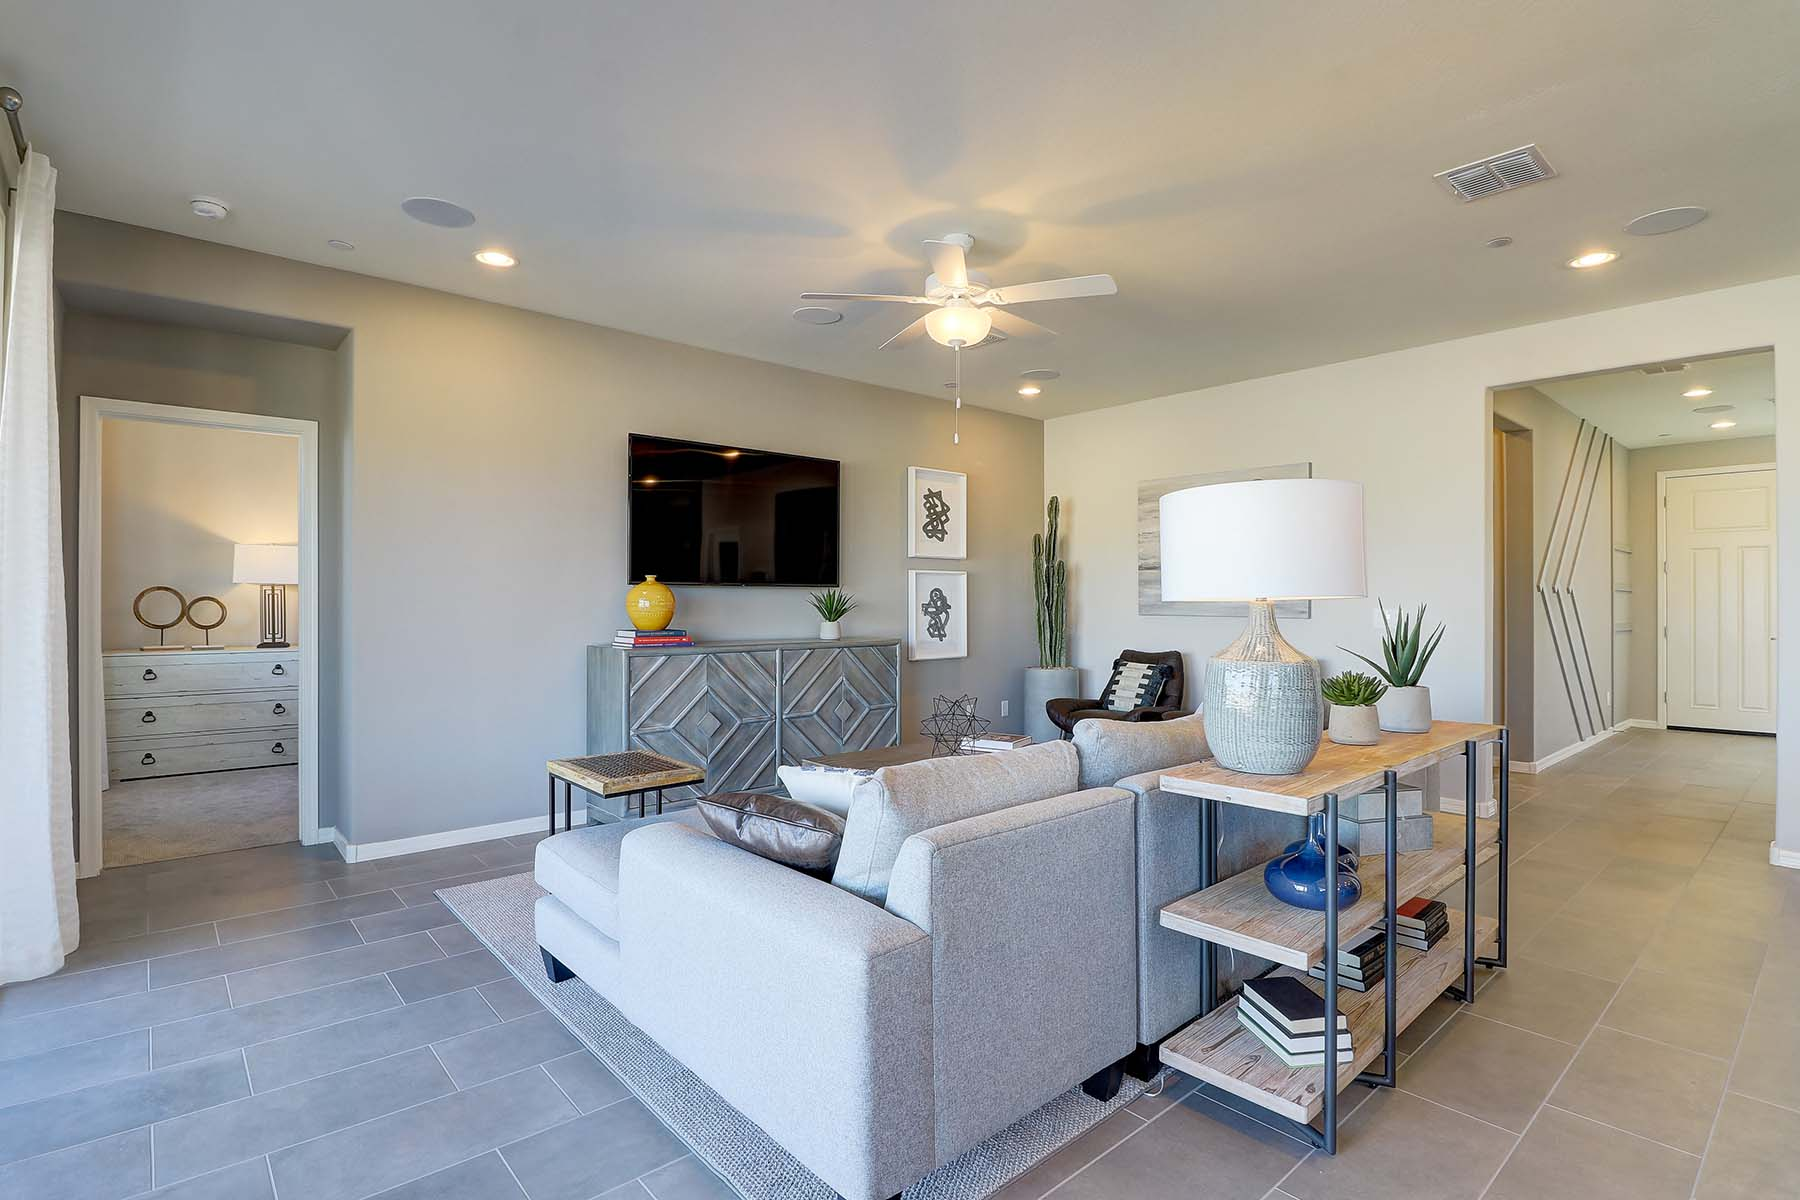 Willowleaf Plan Greatroom at Brookside at Arroyo Seco in Buckeye Arizona by Mattamy Homes